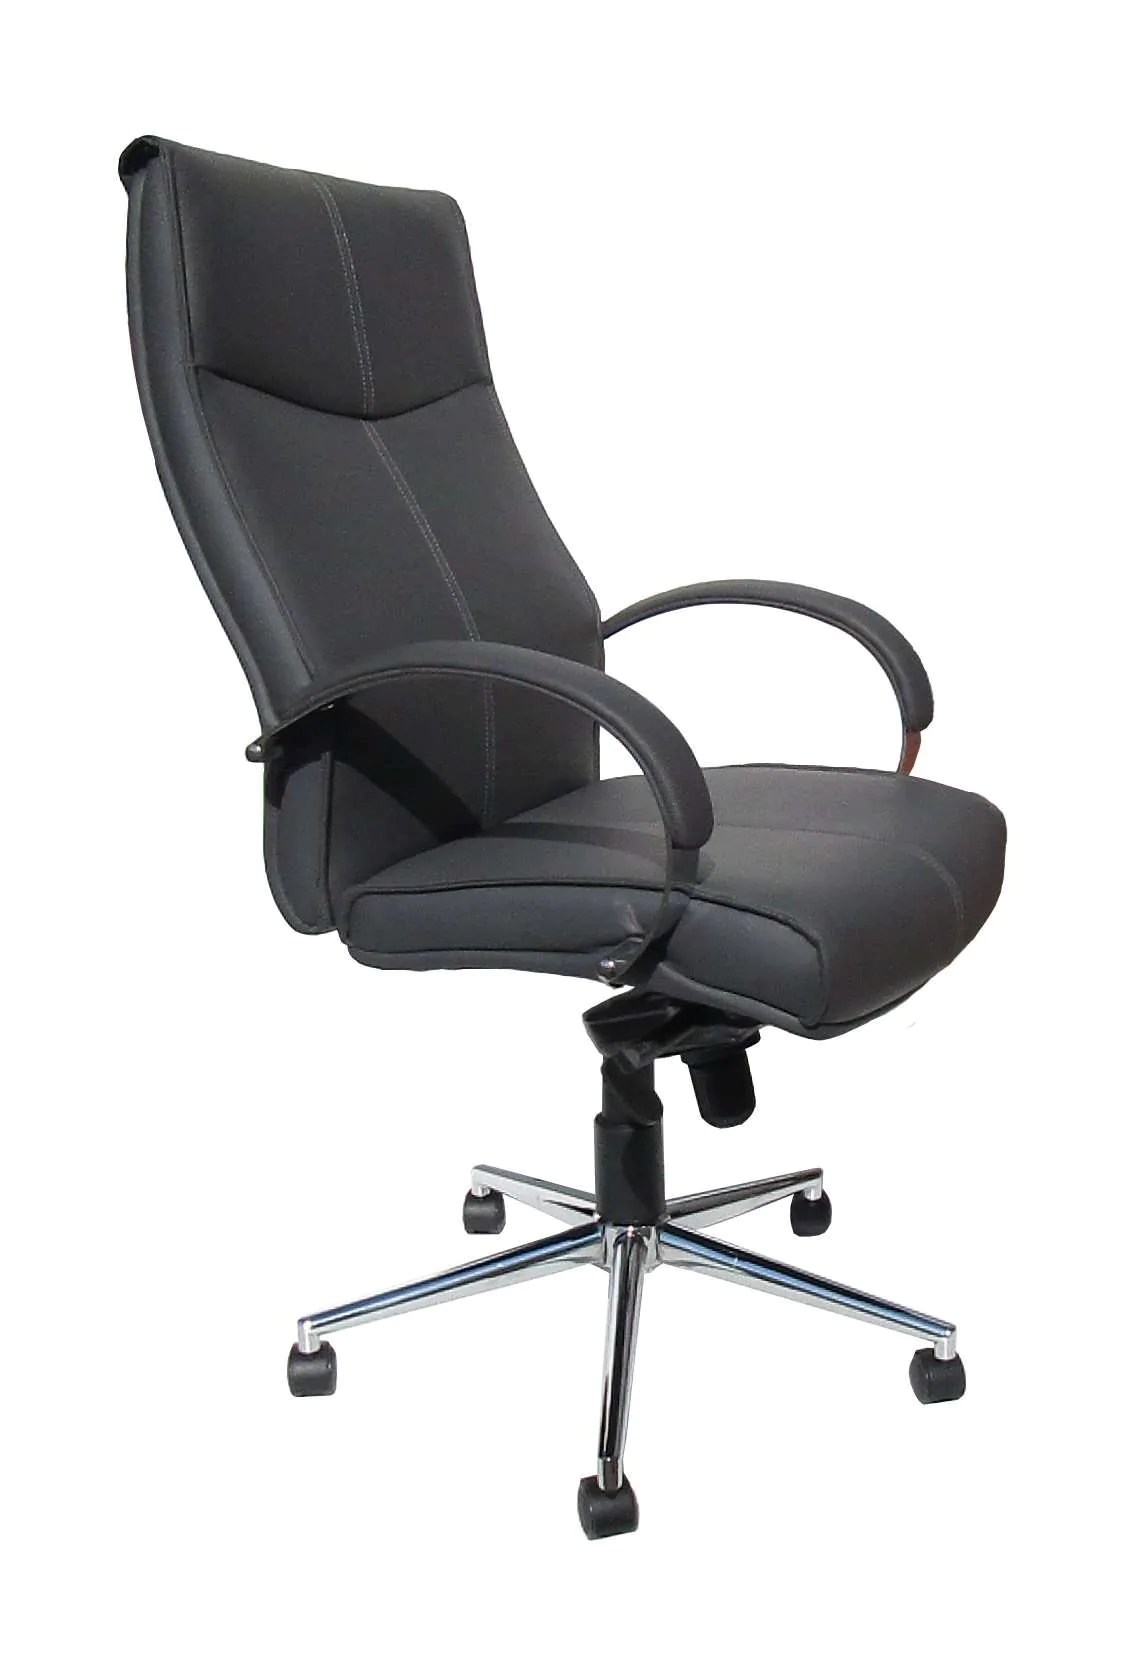 Executive Leather Chair Alphason Verona Grey Executive Leather Office Chair Aoc1019gry